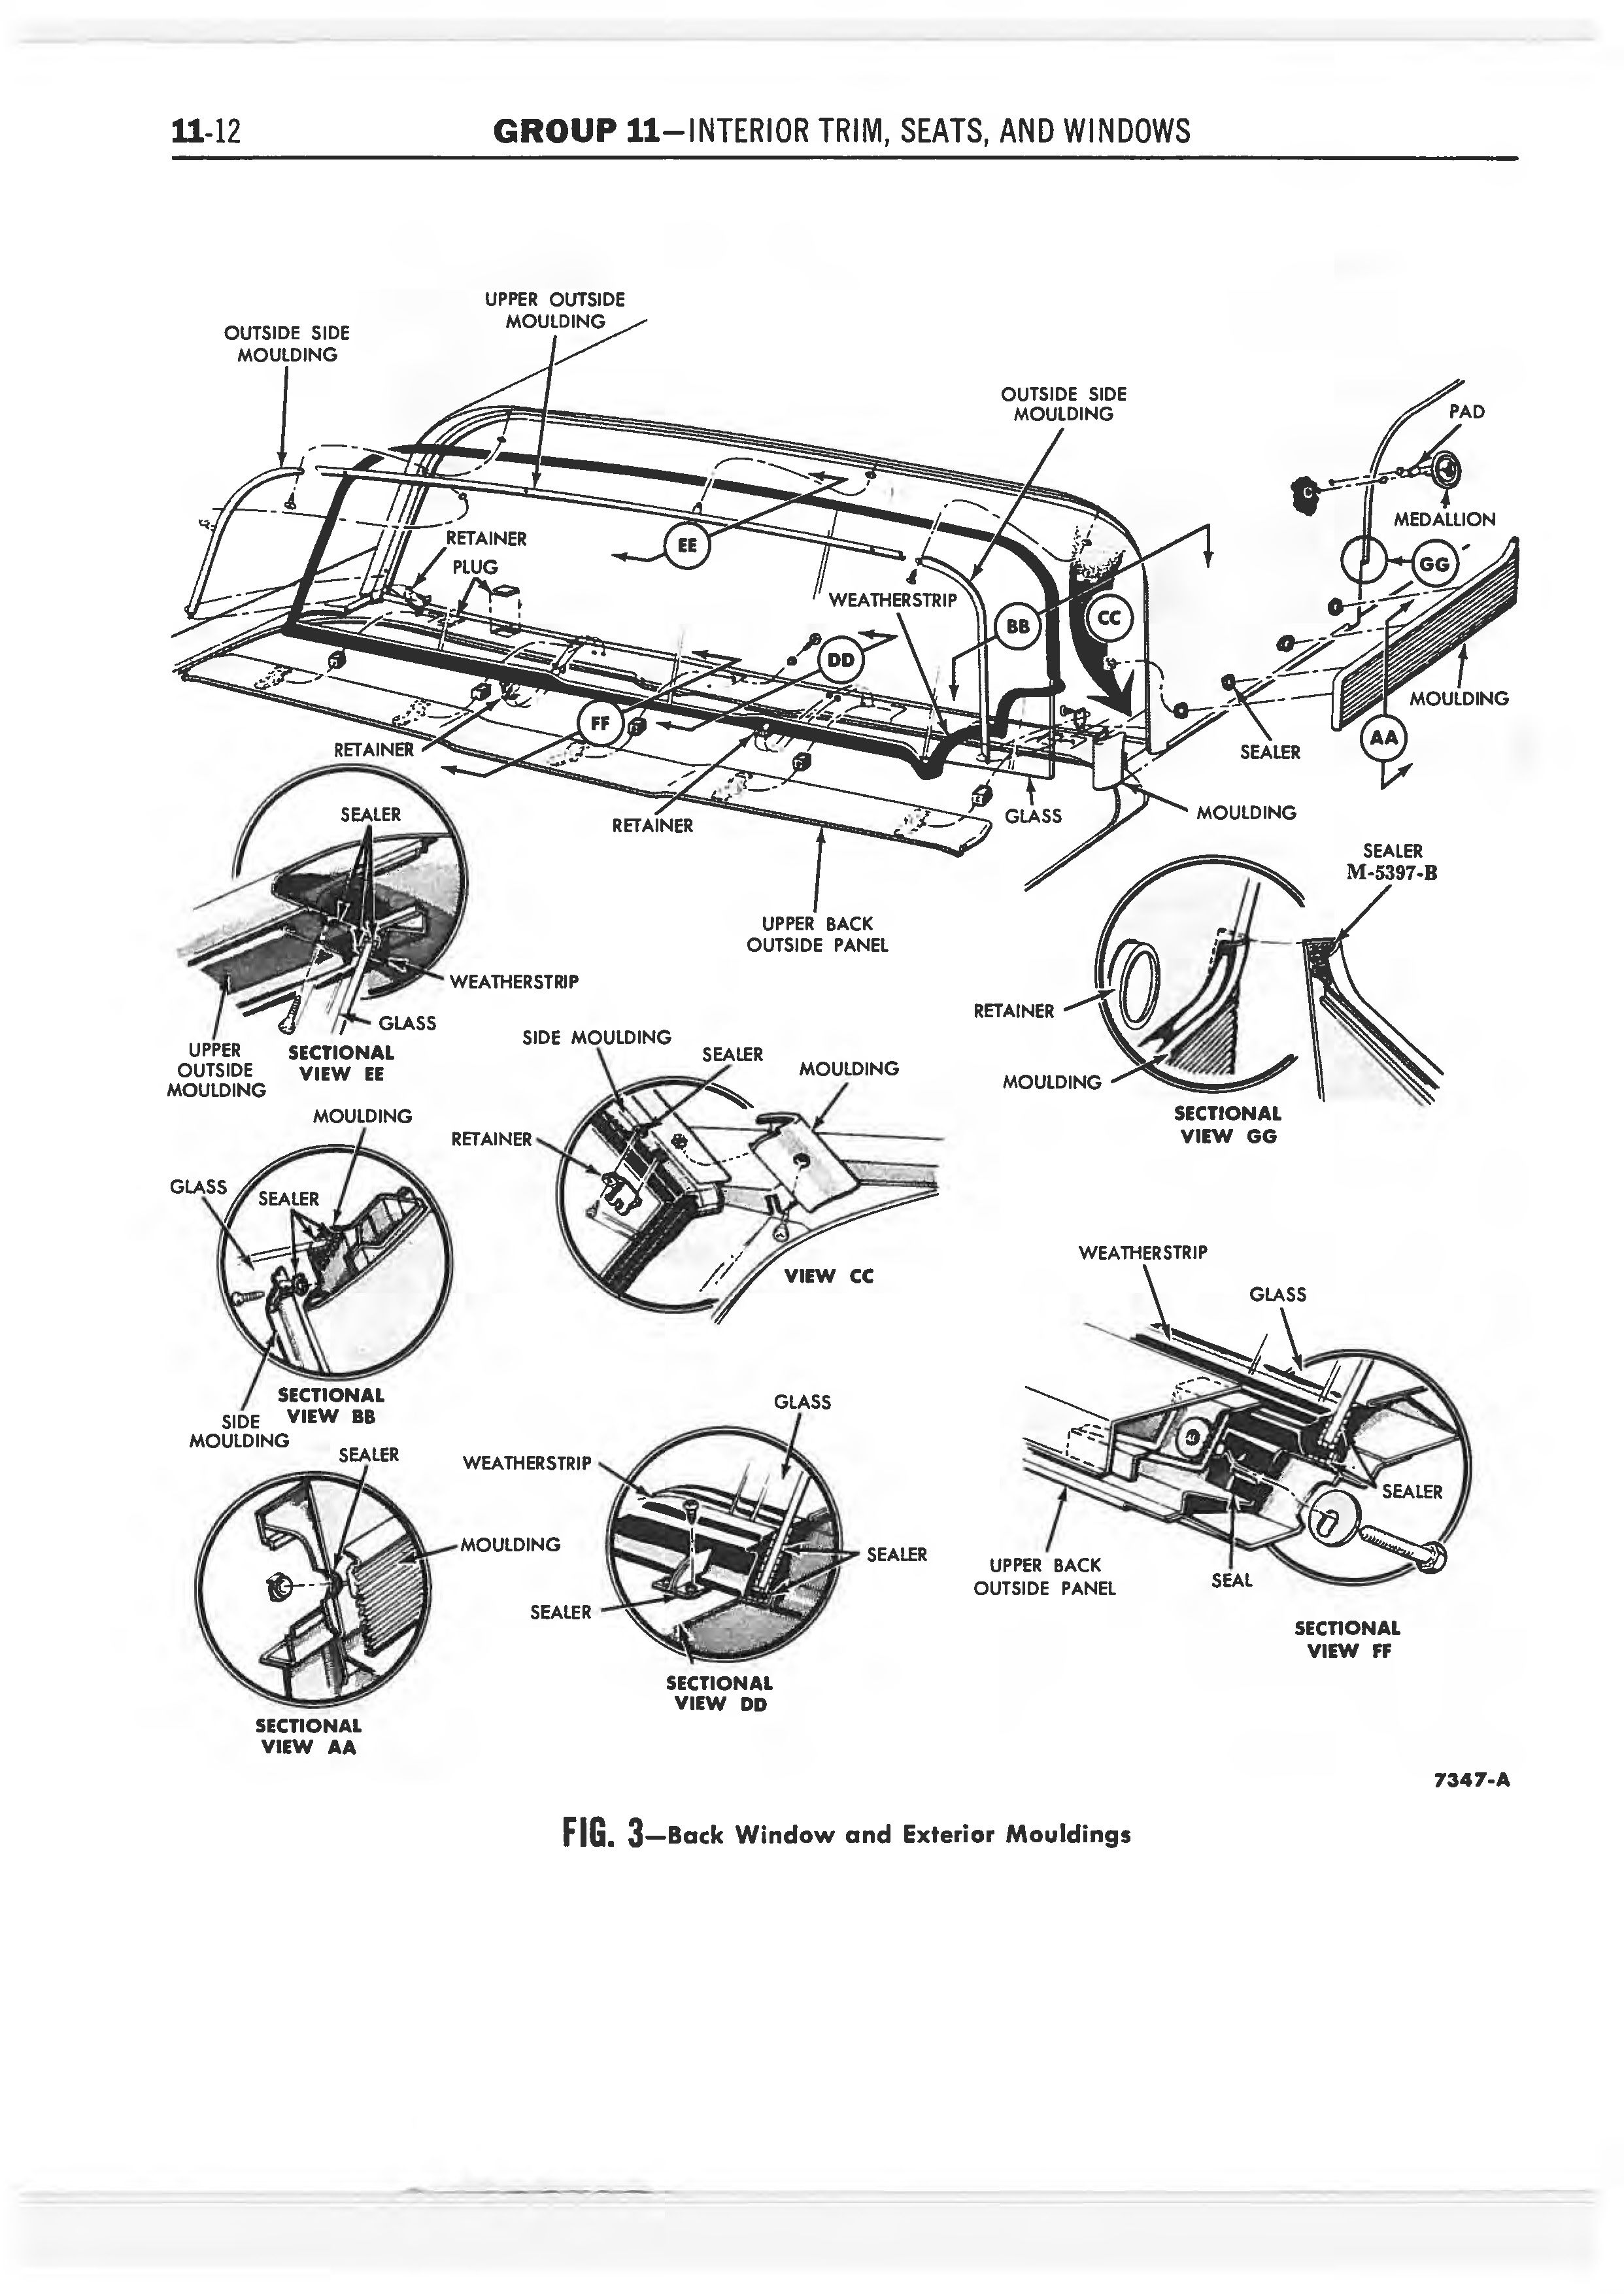 1958 Ford Thunderbird Shop Manual page 325 of 360